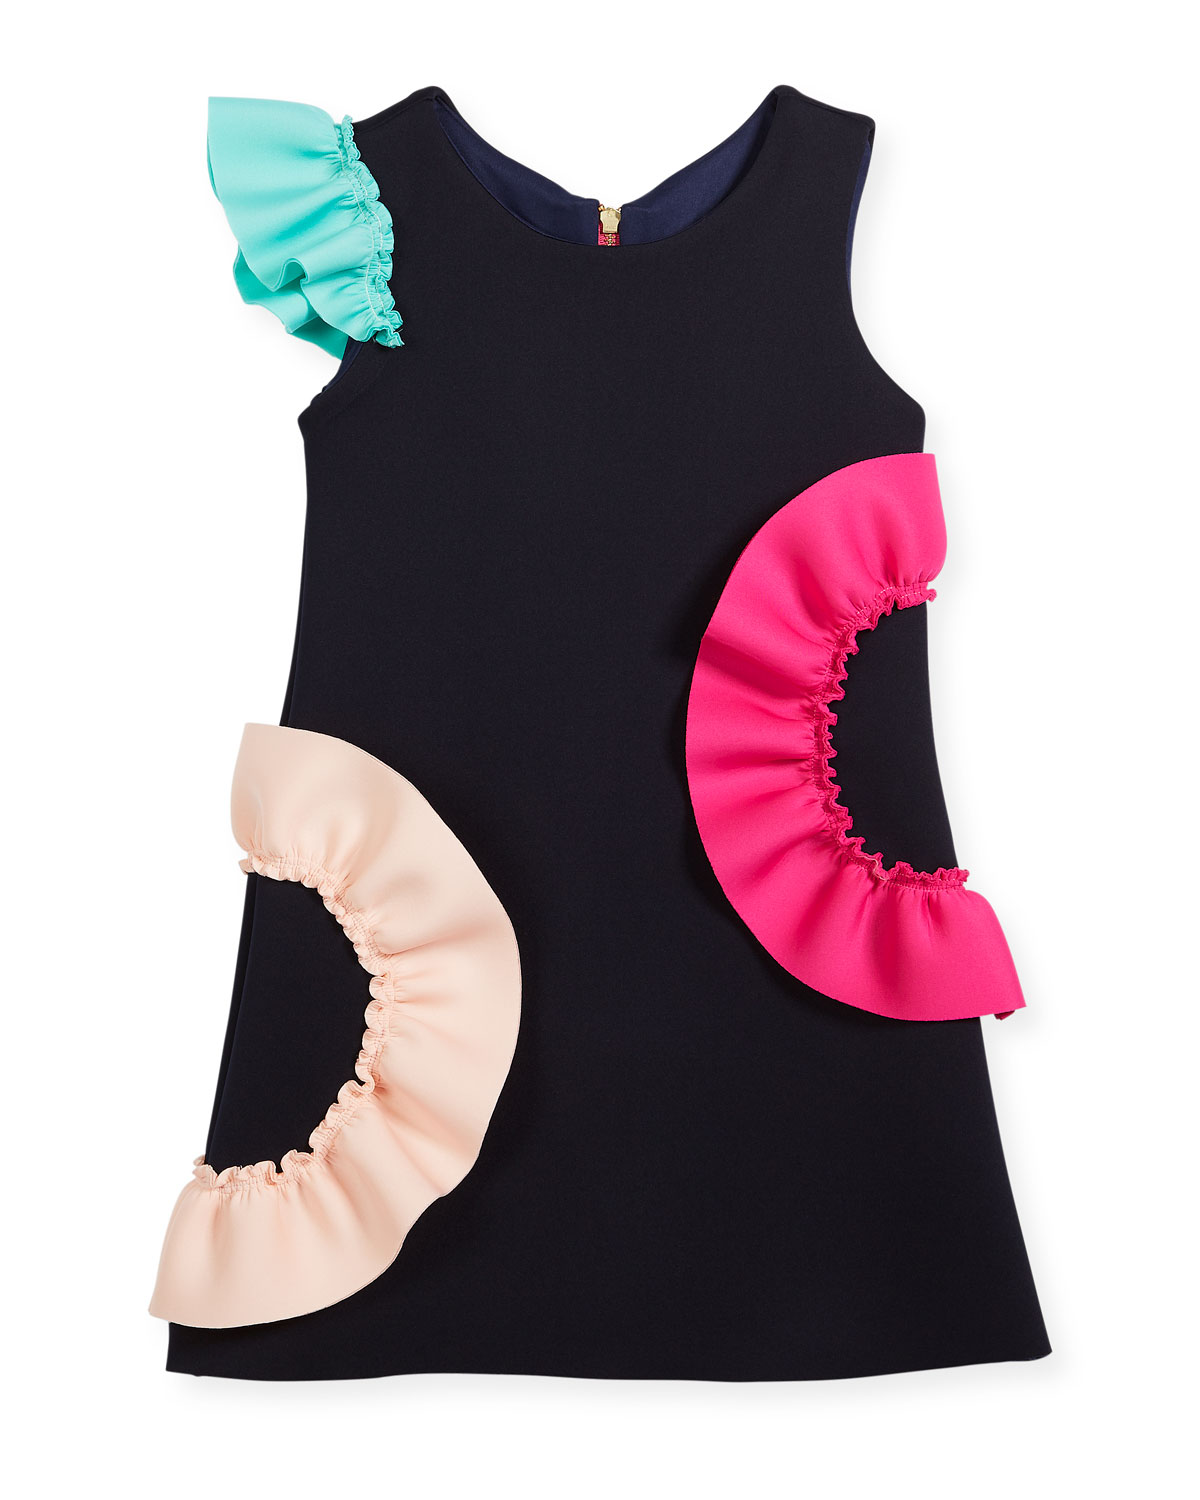 Neoprene Ruffle Shift Dress, Size 4-6X